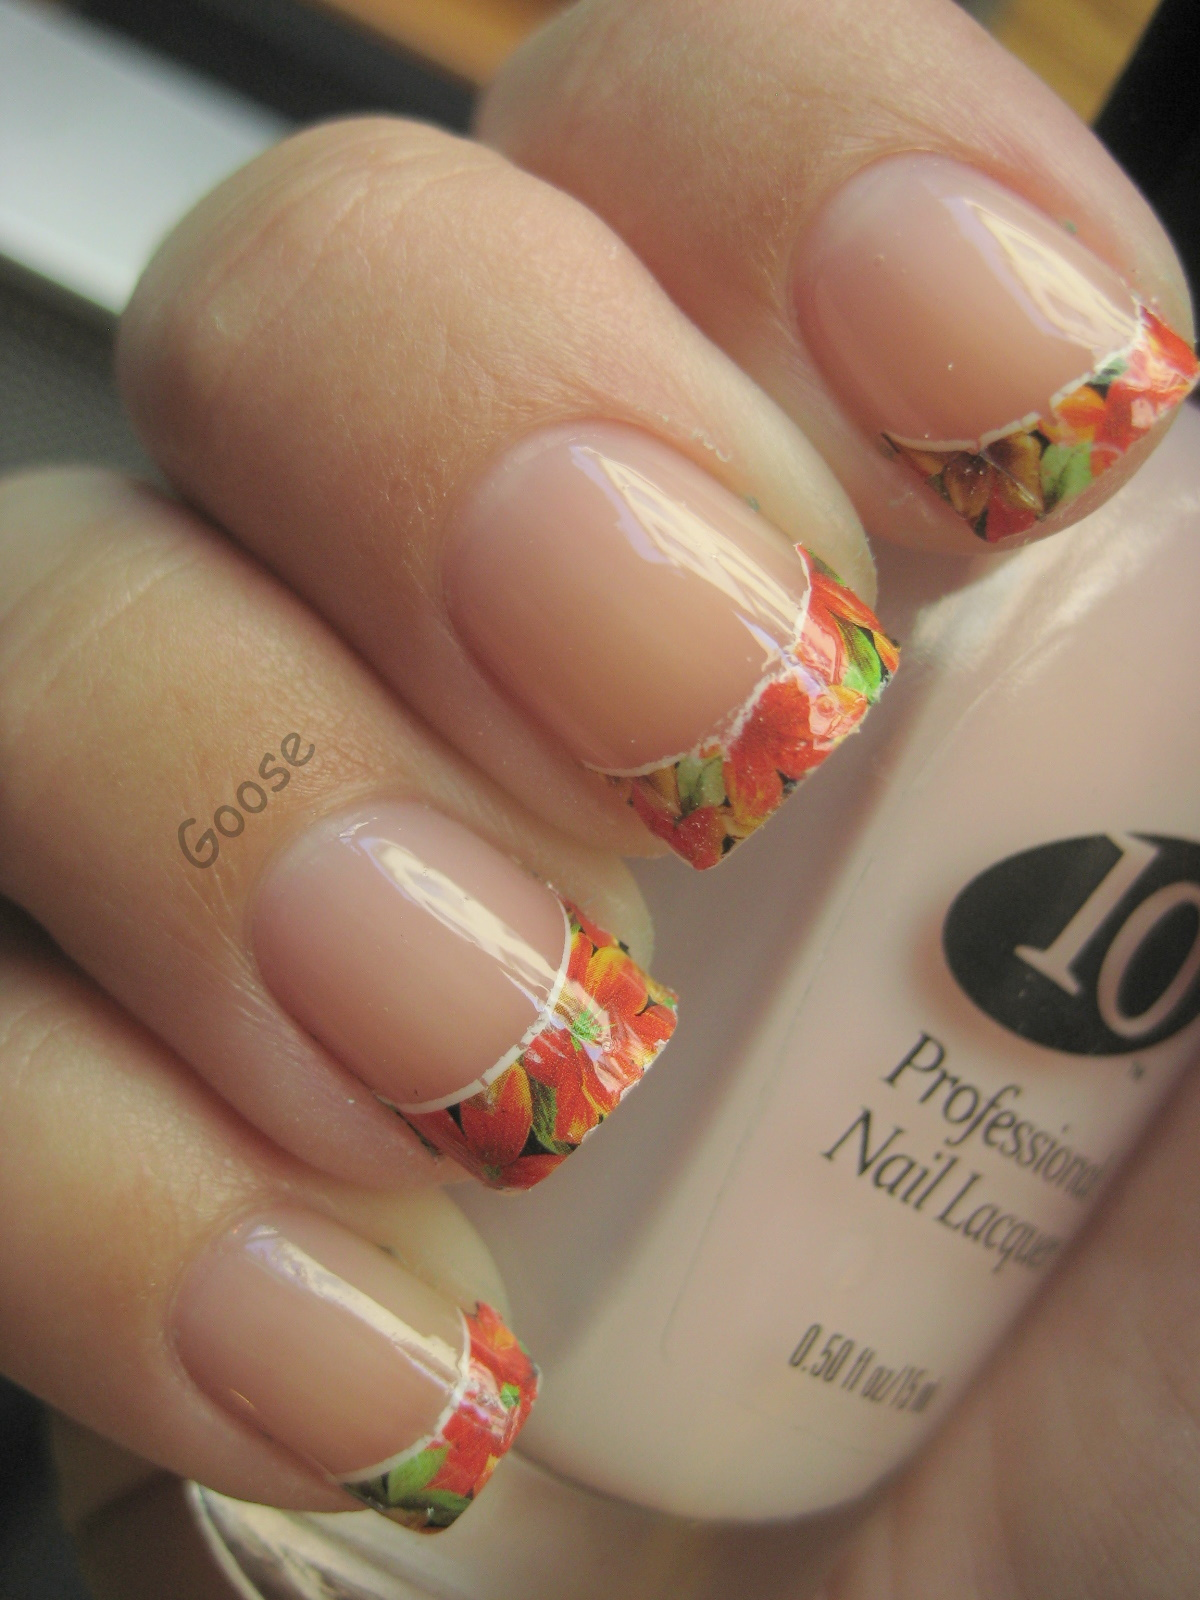 Gooses Glitter Nil Water Decals French Tip Nail Art Wdb069